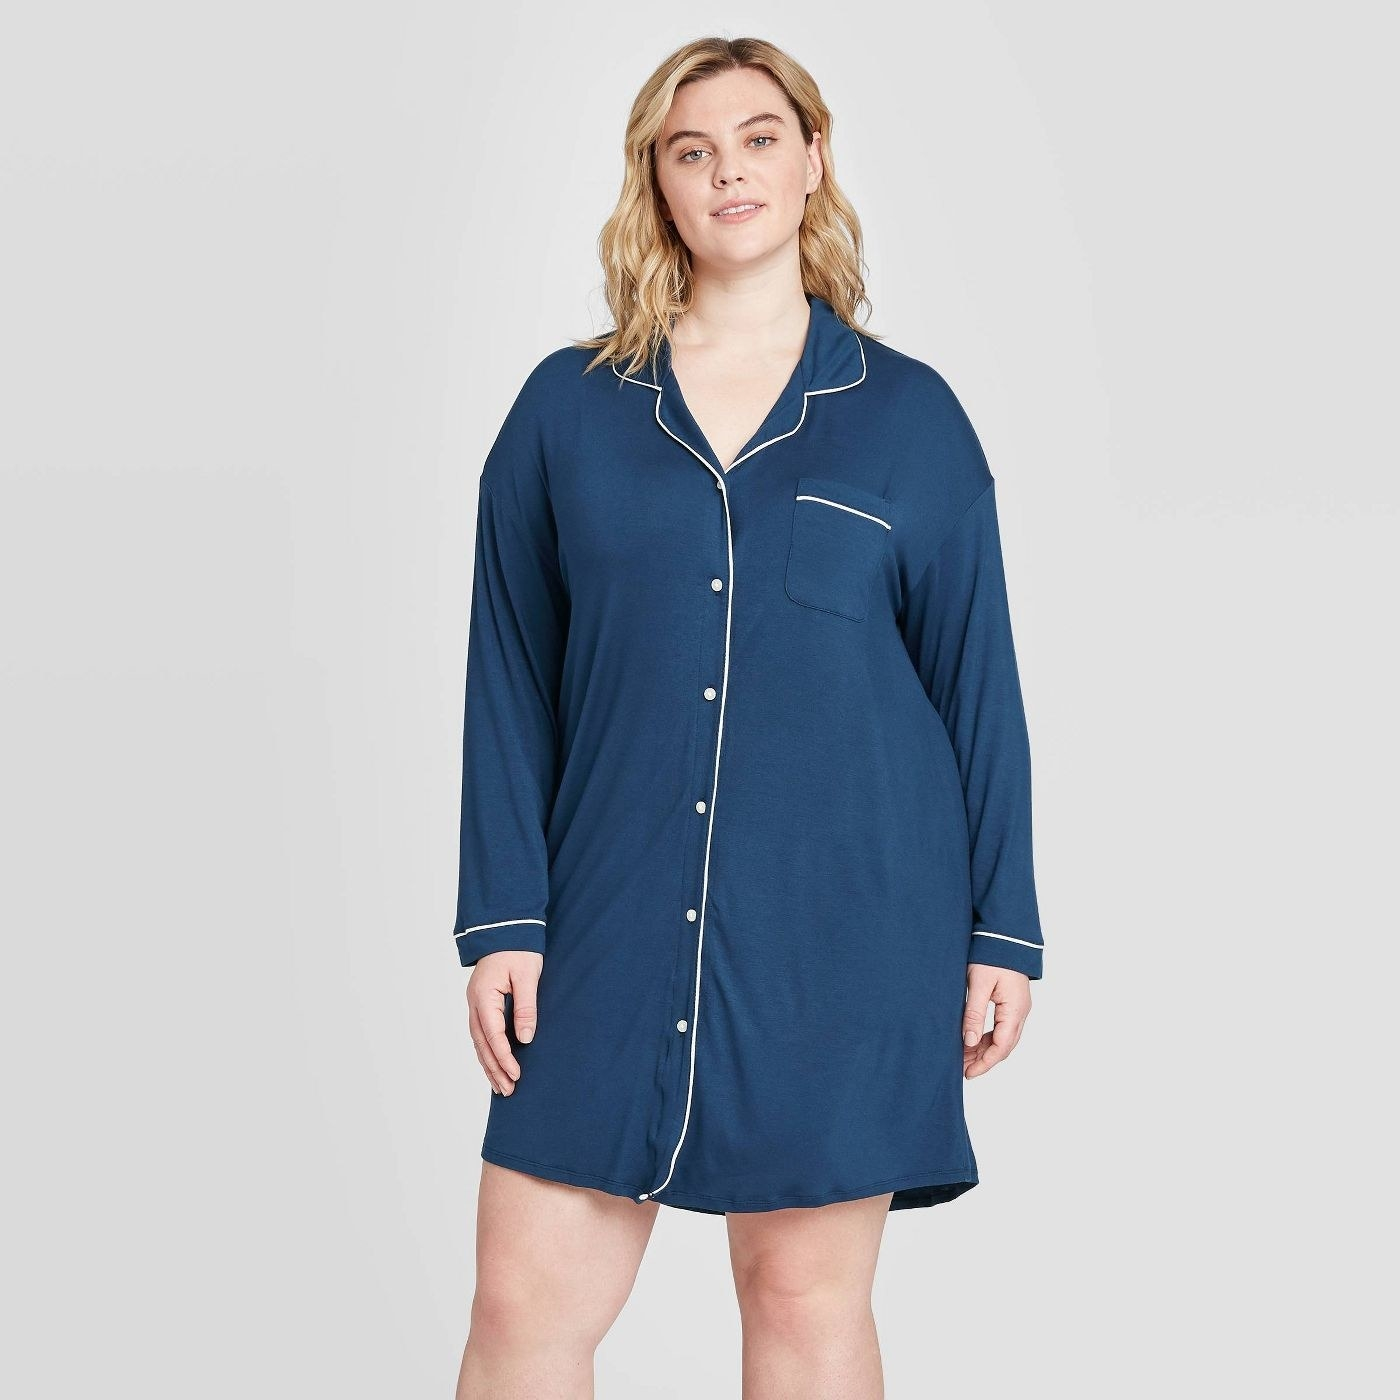 model wearing button-up sleeved blue nightgown with white trim